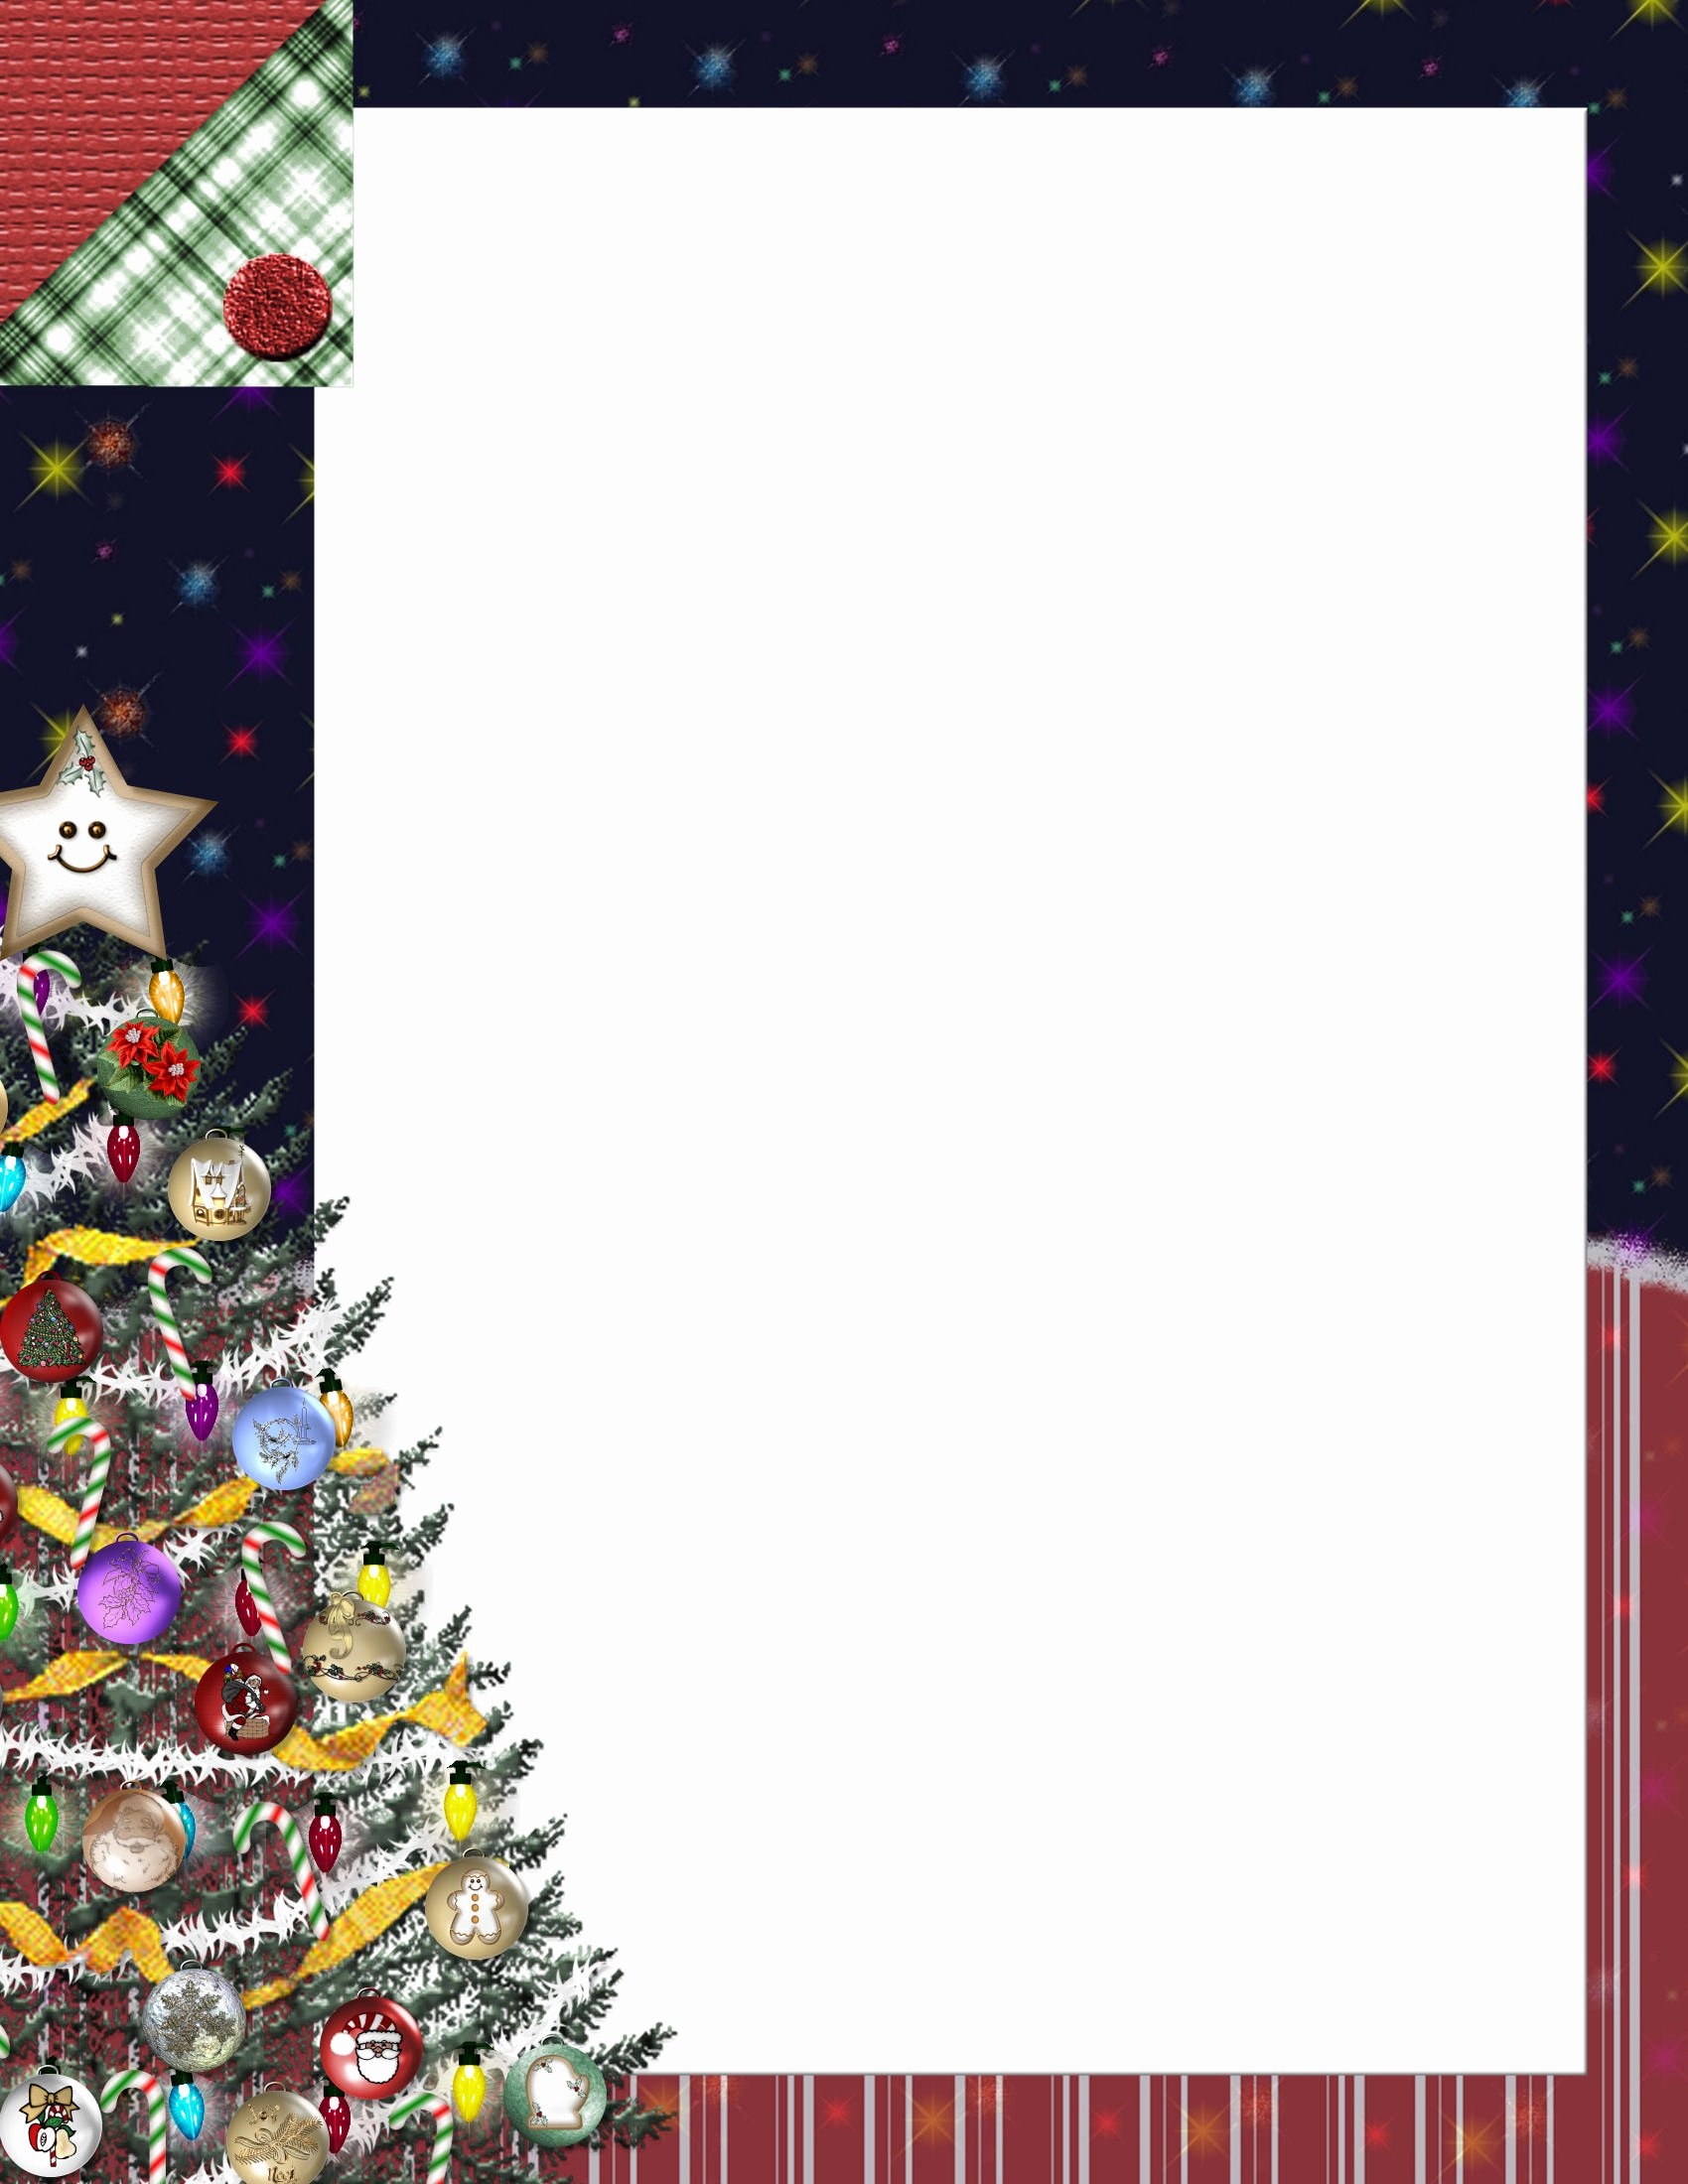 Christmas Template for Word Portablegasgrillweber